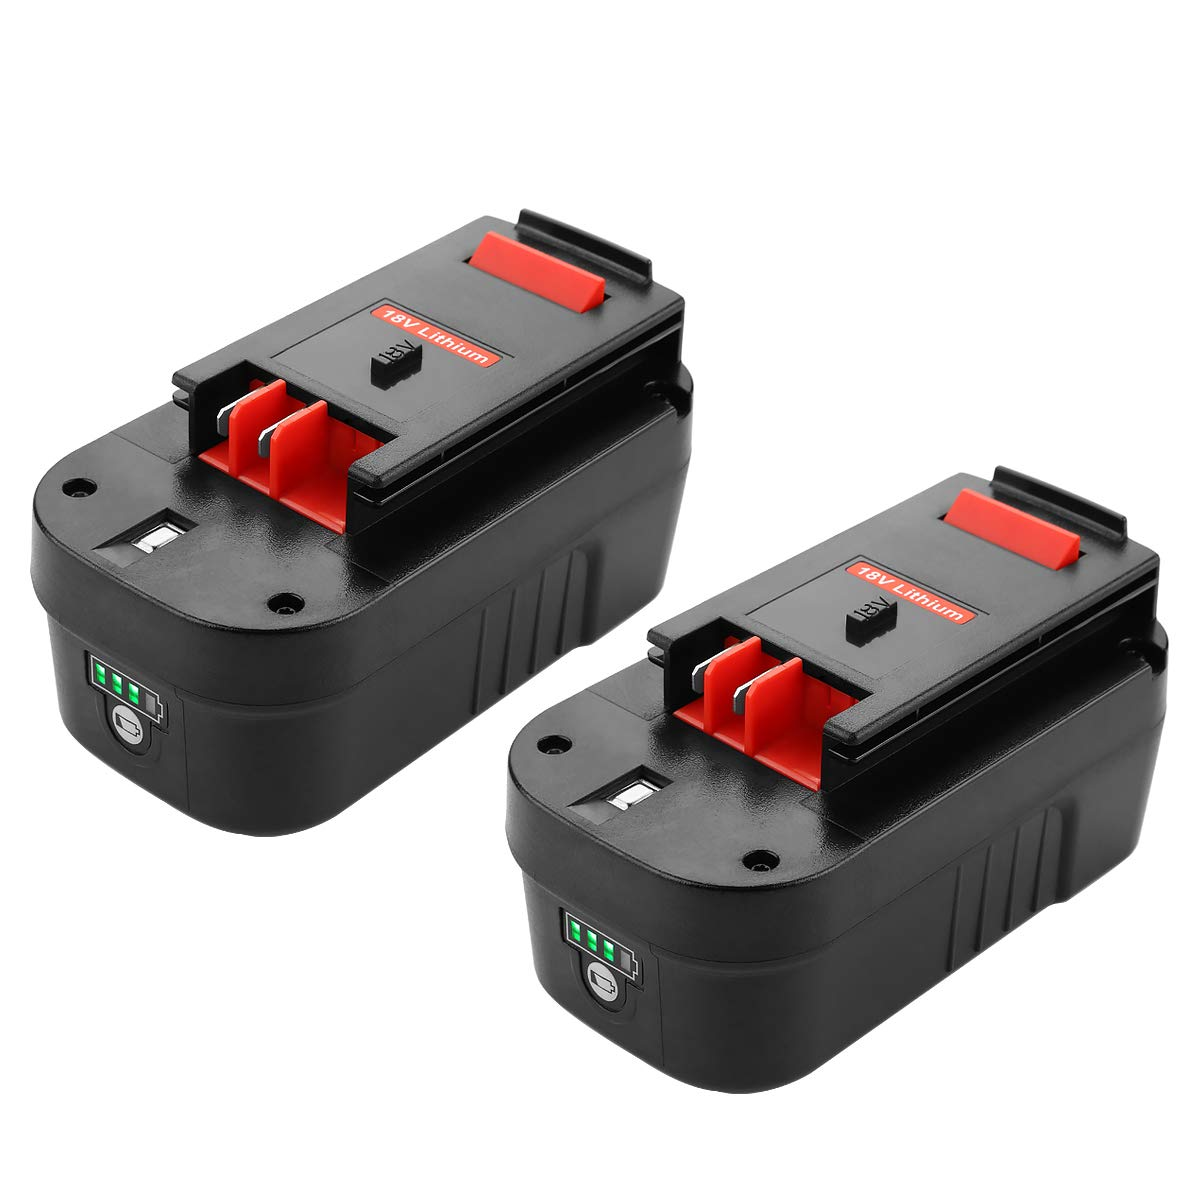 ANTRobut 2 Pack Upgraded 5000mAh HPB18-OPE Lithium and NiCad Replacement for Black and Decker 18 Volt Battery HPB18-OPE 244760-00 A1718 FS18FL FSB18 Black Decker 18V Battery